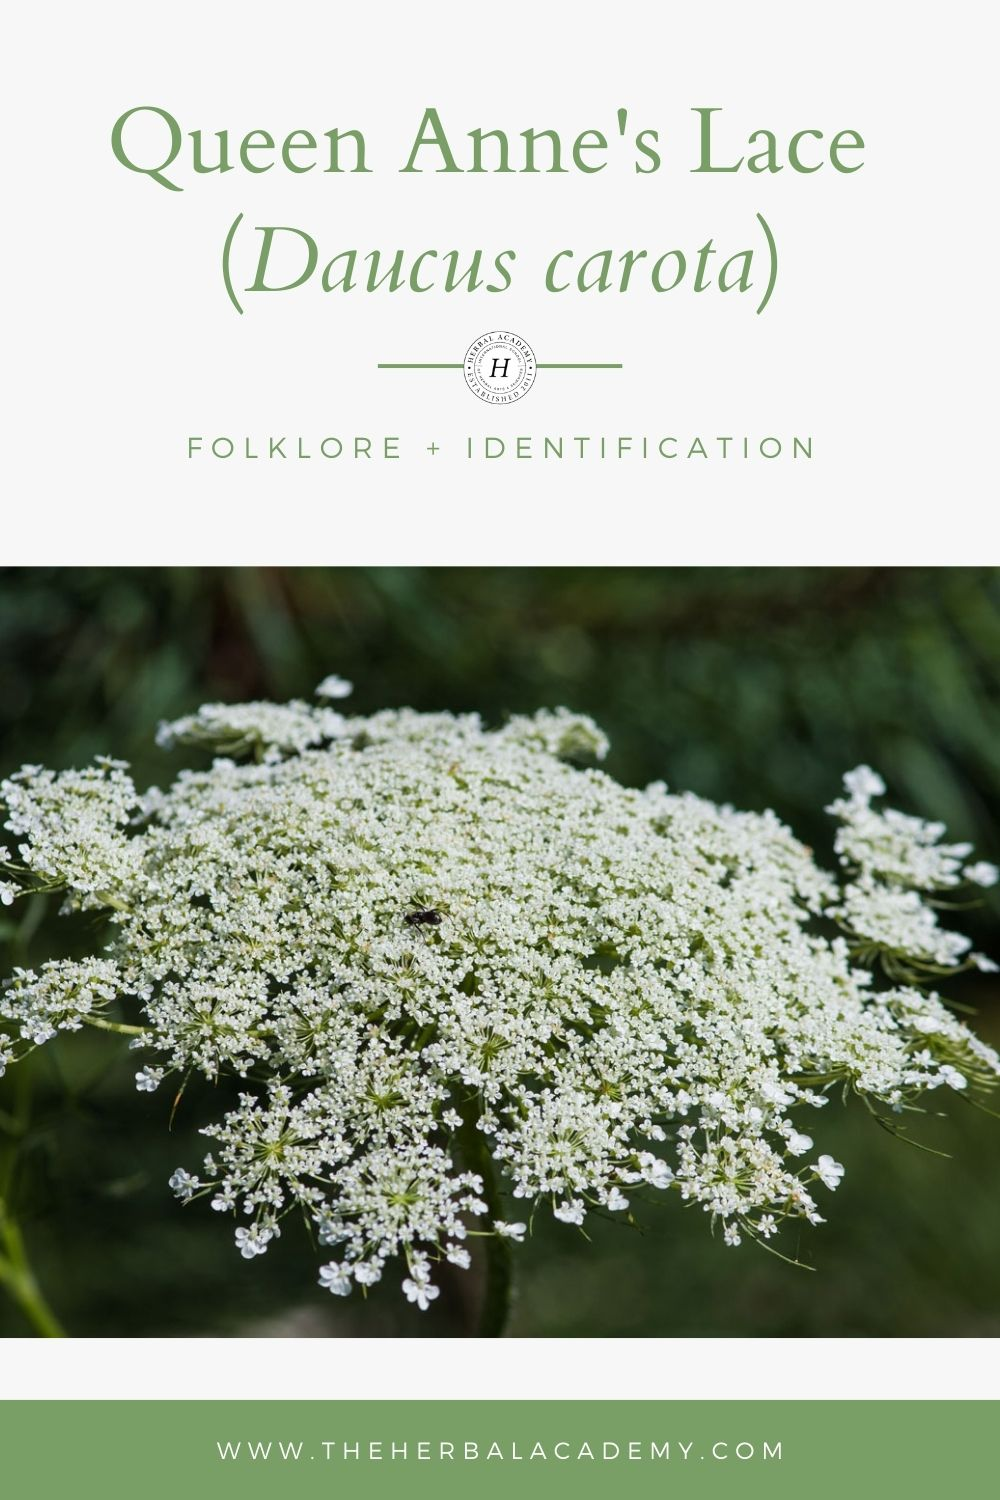 Queen Anne's Lace Pinterest graphic